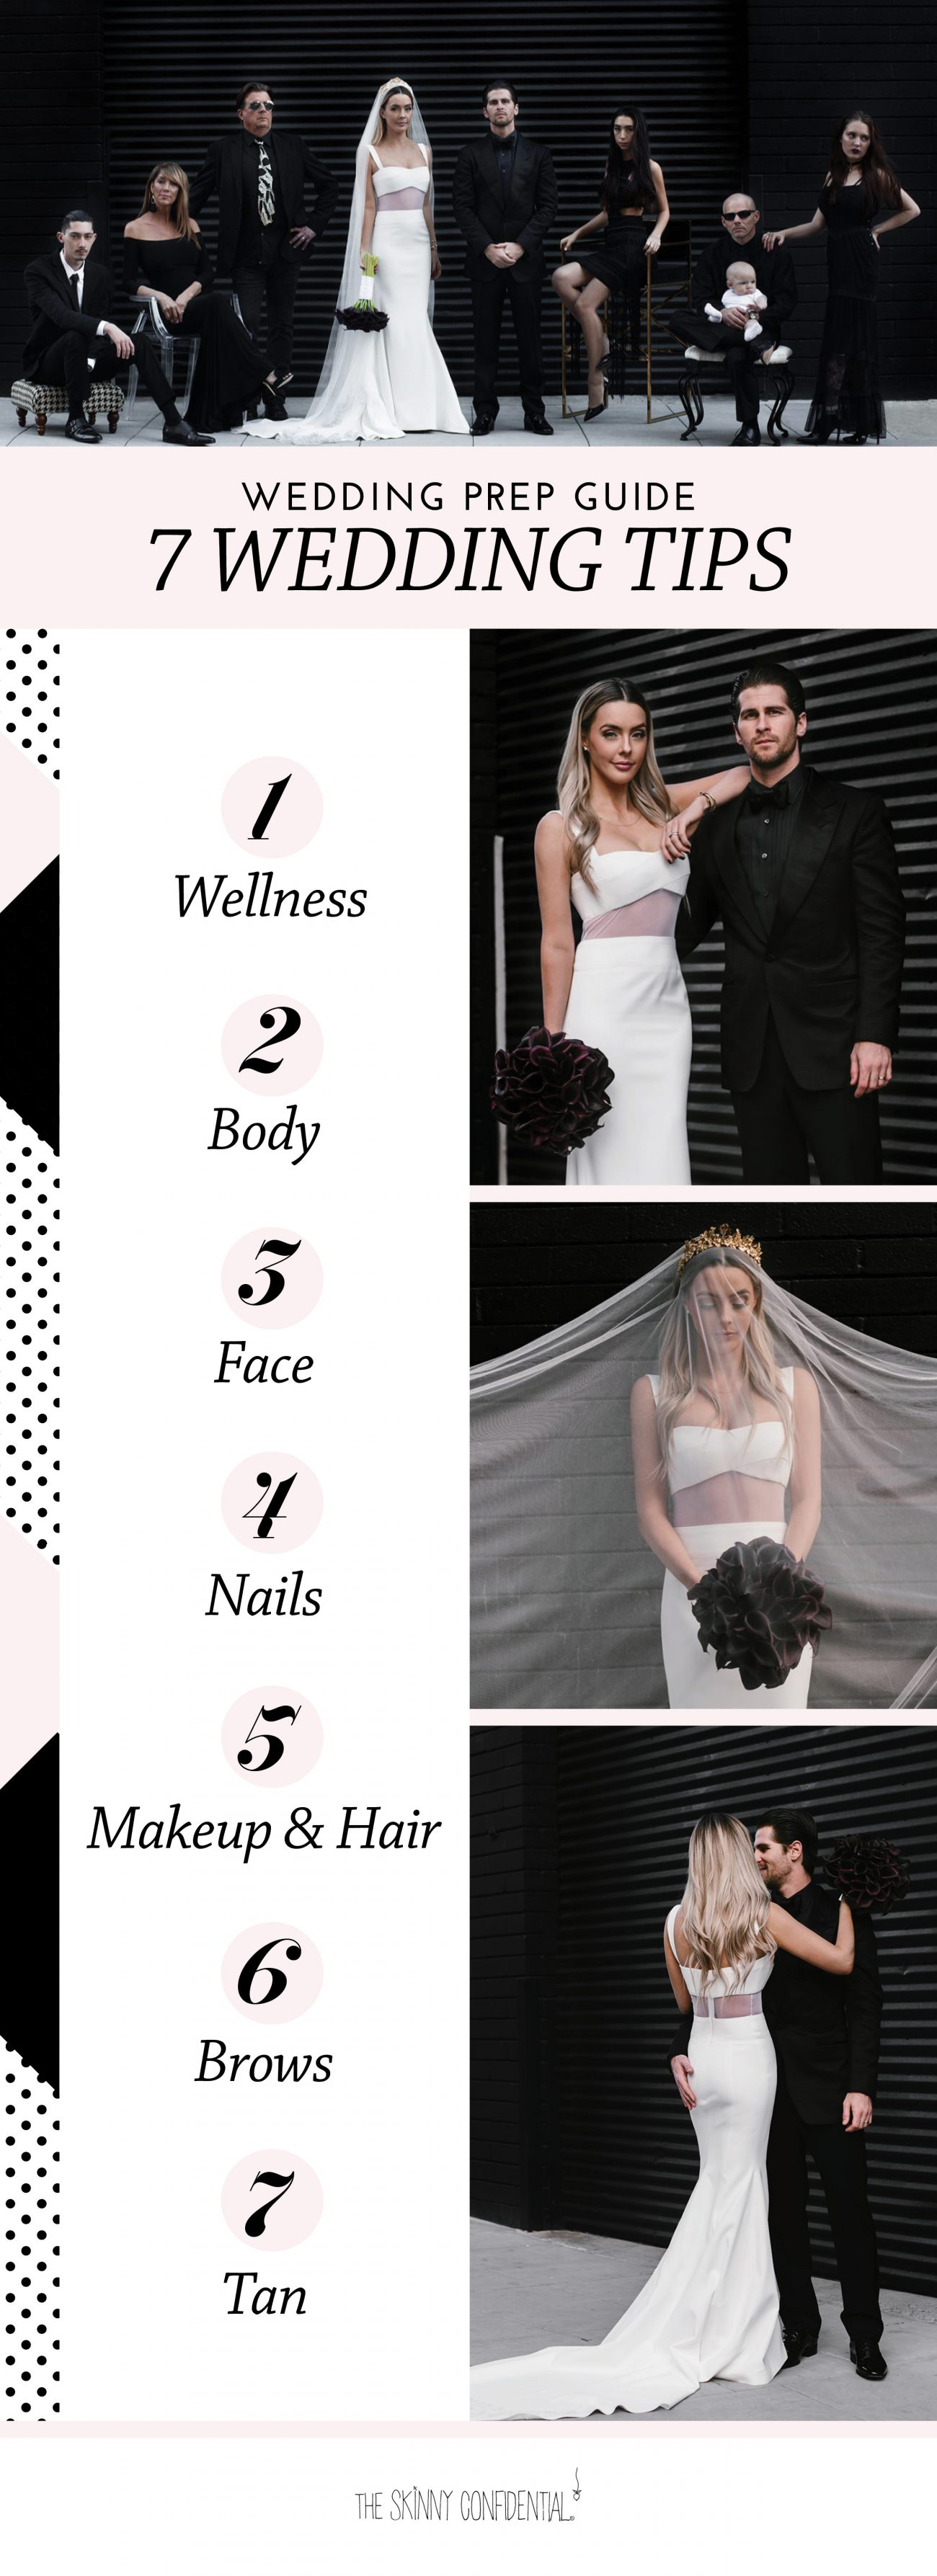 wedding prep guide by the skinny confidential